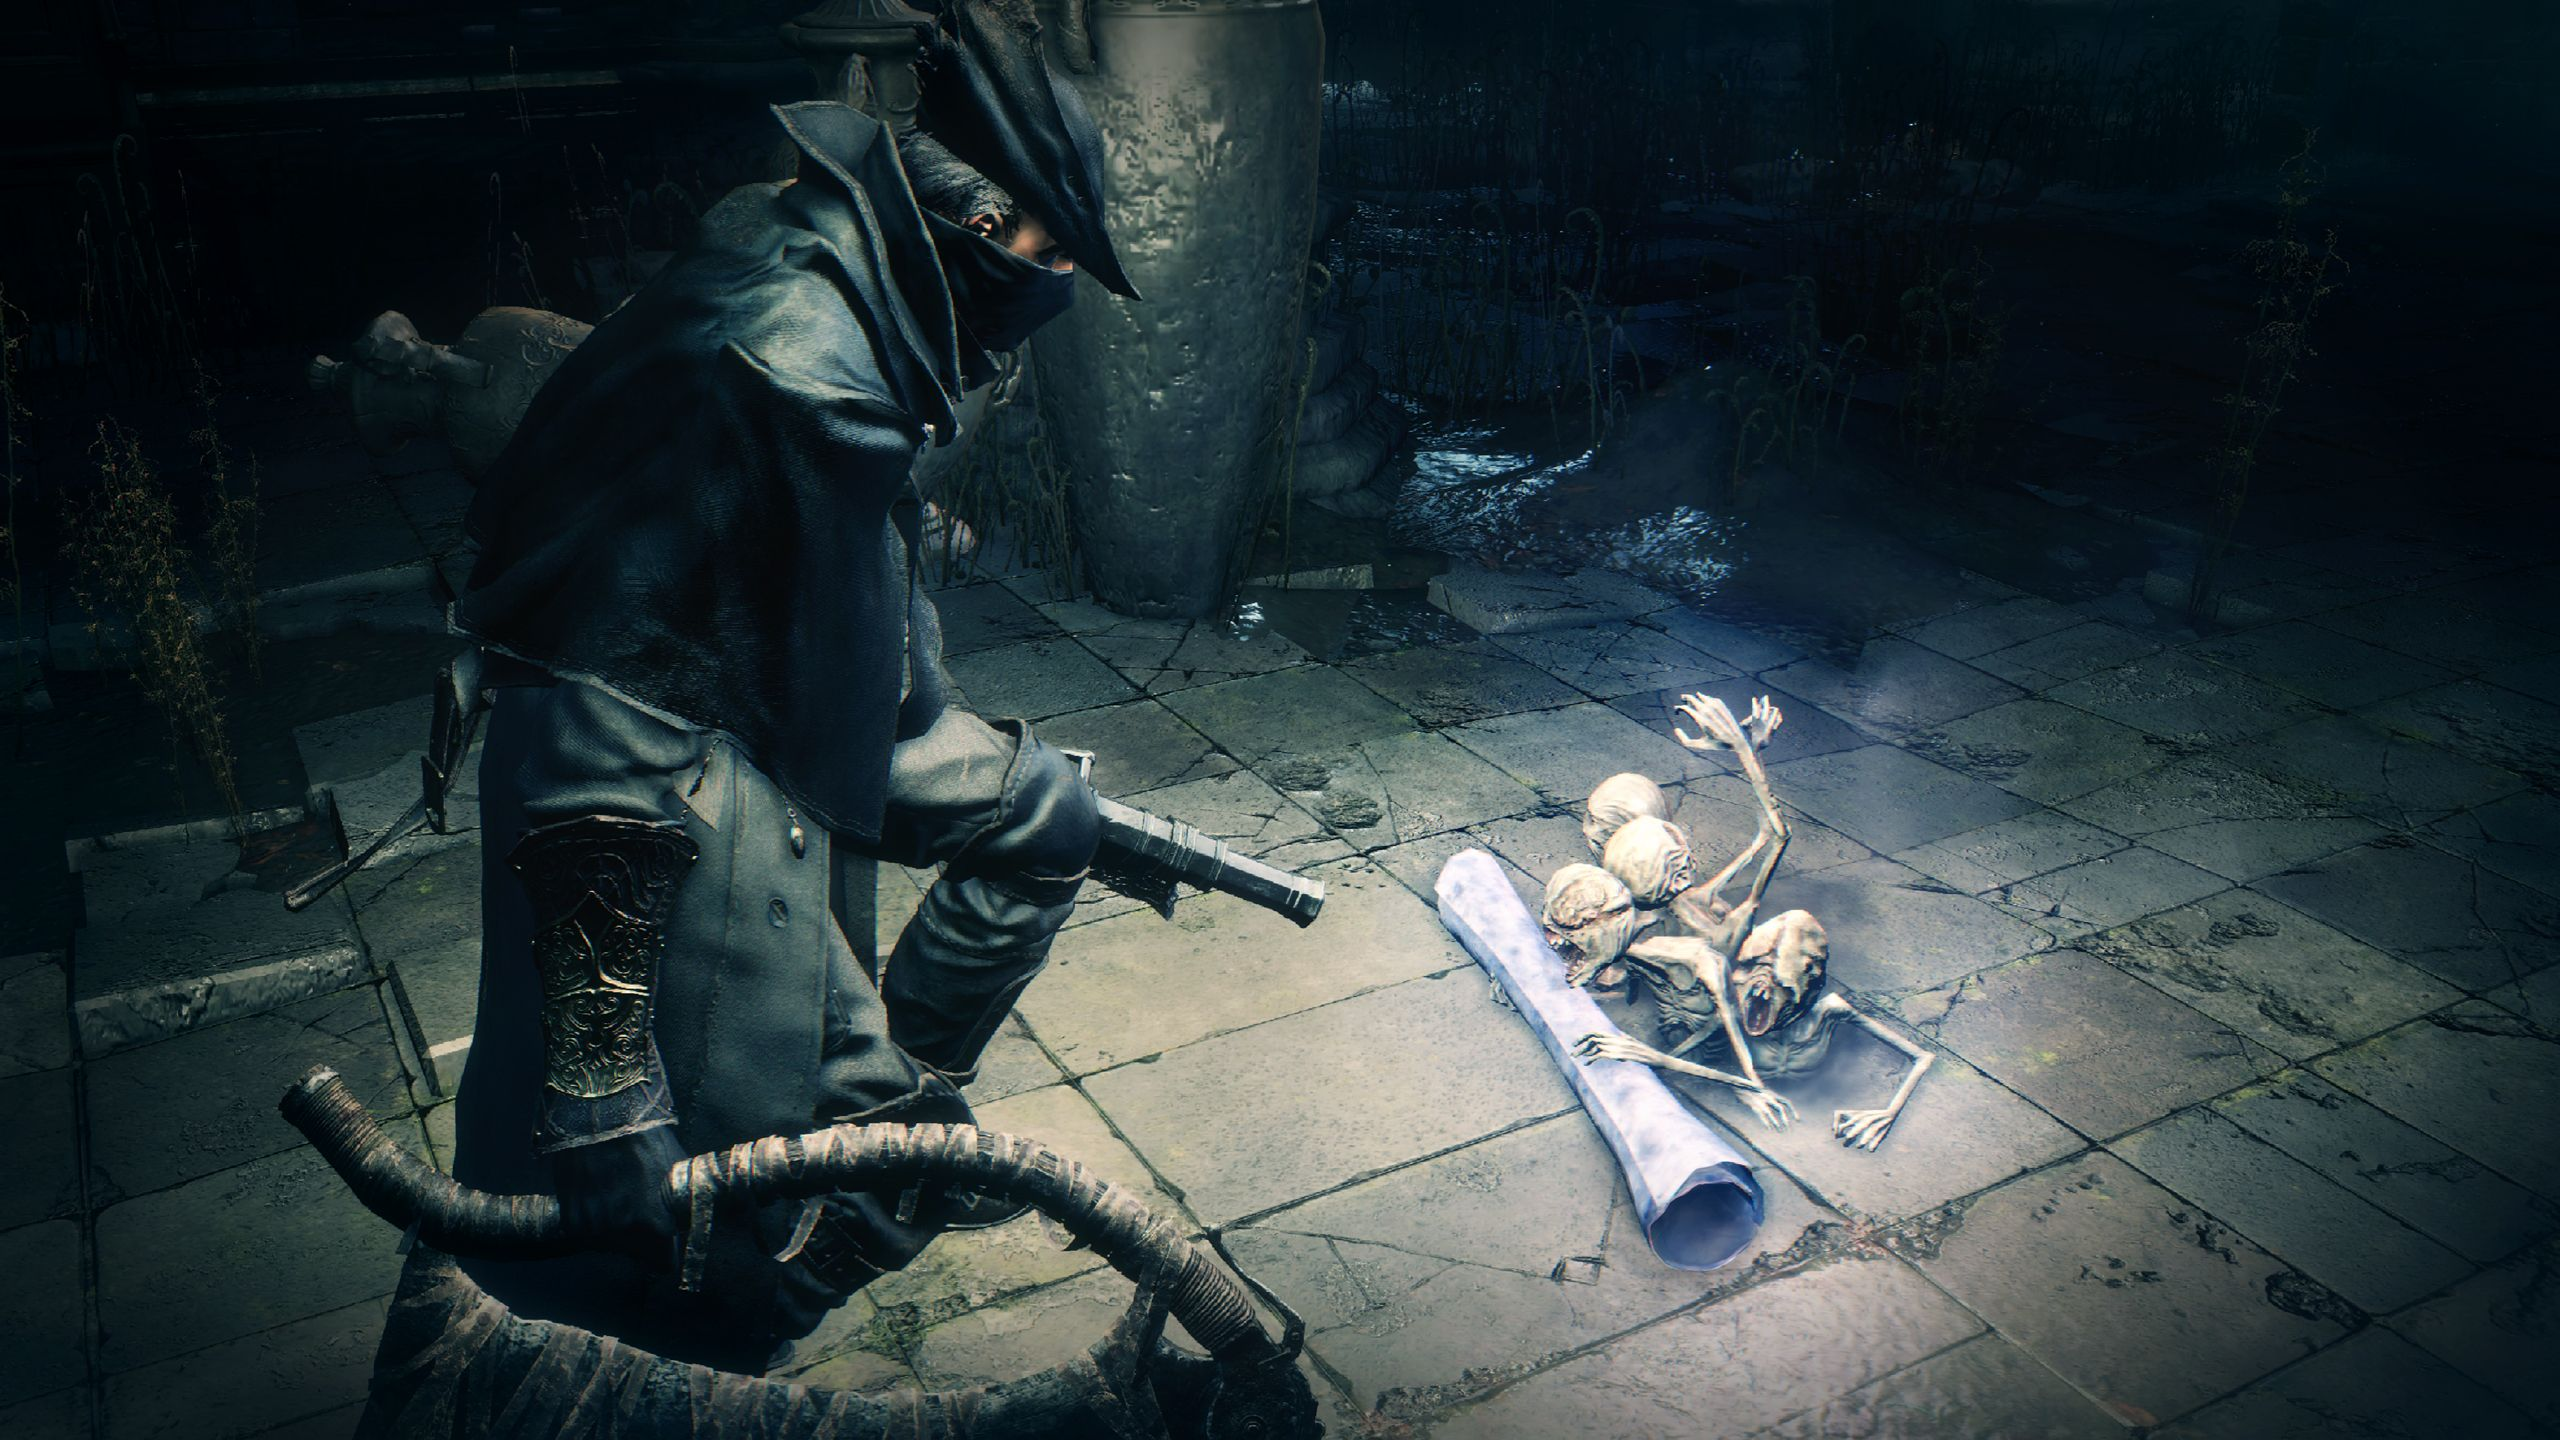 Bloodborne - there's an explanation for everything